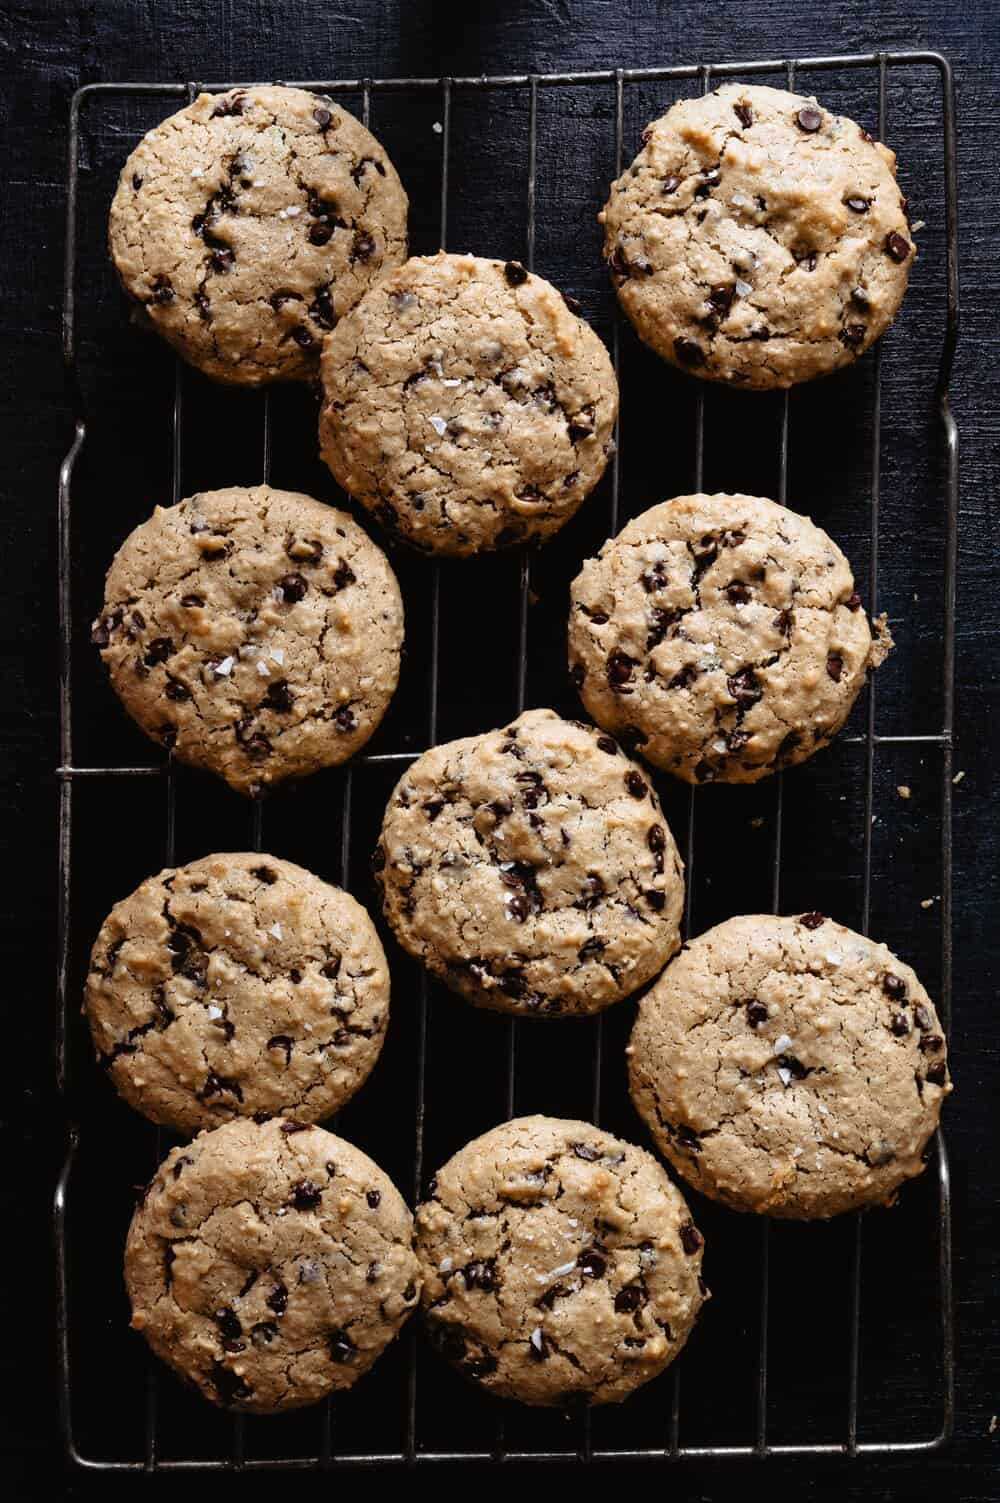 LIFE CHANGING CHOCOLATE CHIP TAHINI COOKIES - INGREDIENTS1 cup almond flour1 cup Soom Foods tahini1/2 cup maple syrup1 egg1 tsp baking soda1 heaping cup of Enjoy Life Foods dairy free mini chocolate chips1 scoop collagen peptides (optional, but great source of protein)sea salt flakes for topping